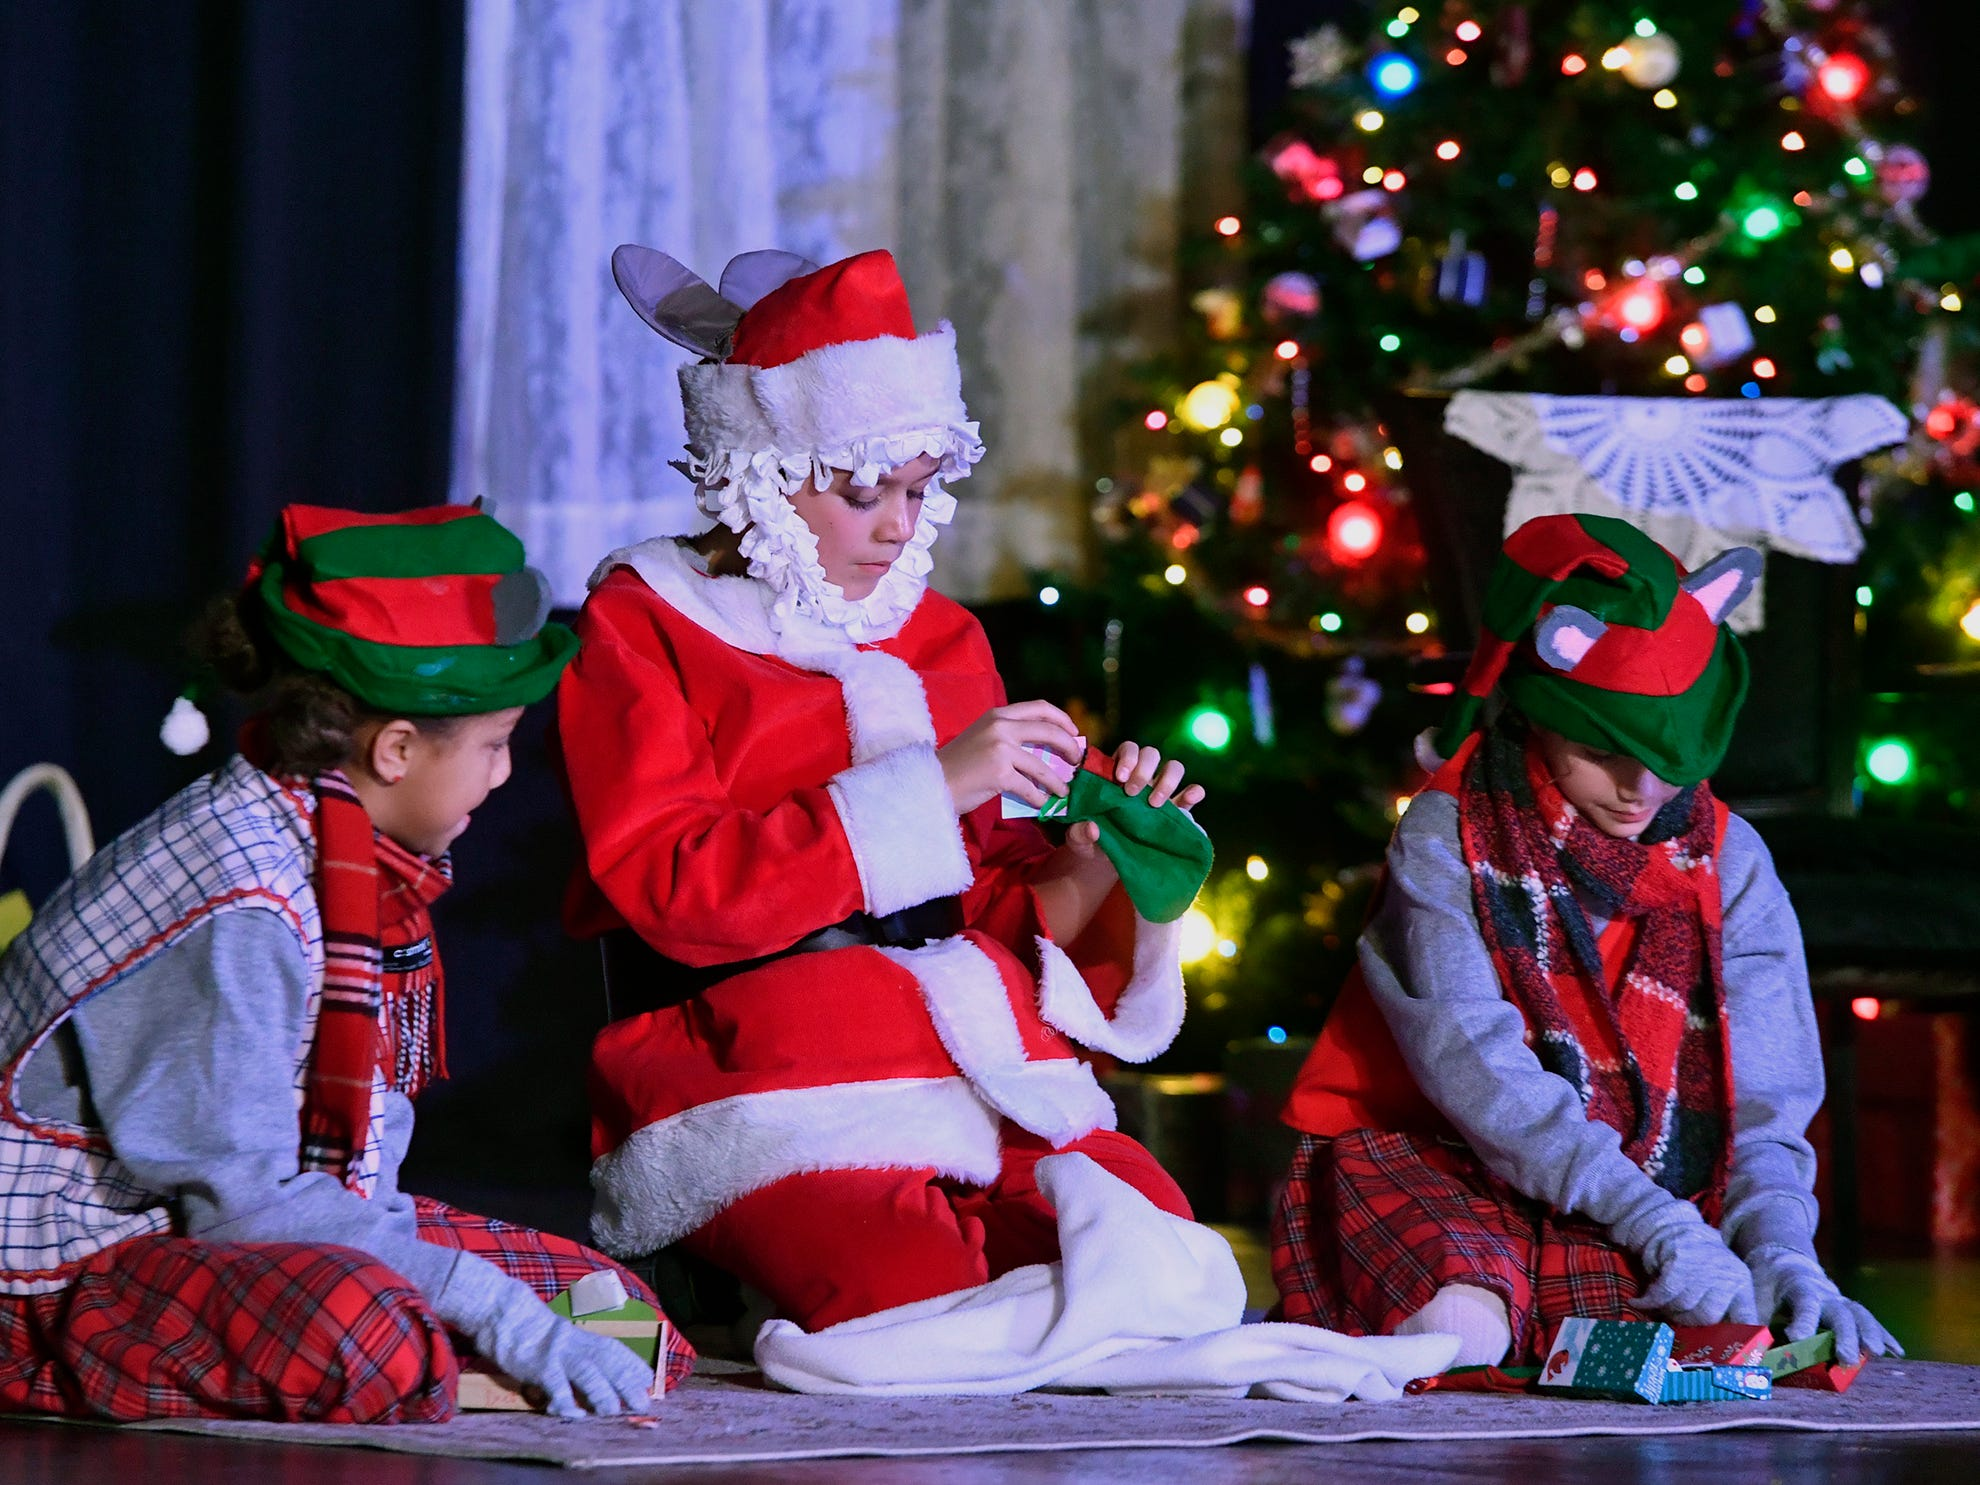 """Theater Arts for Everyone is performing """"The Night Before Christmas"""" this weekend at The York Learning Center. Show times are Dec. 7 & 8 at 7 p.m. and Dec 8 & 9 at 3 p.m.  Tickets are available at the door or through Eventbrite. Thursday, December 6, 2018.  John A. Pavoncello photo"""